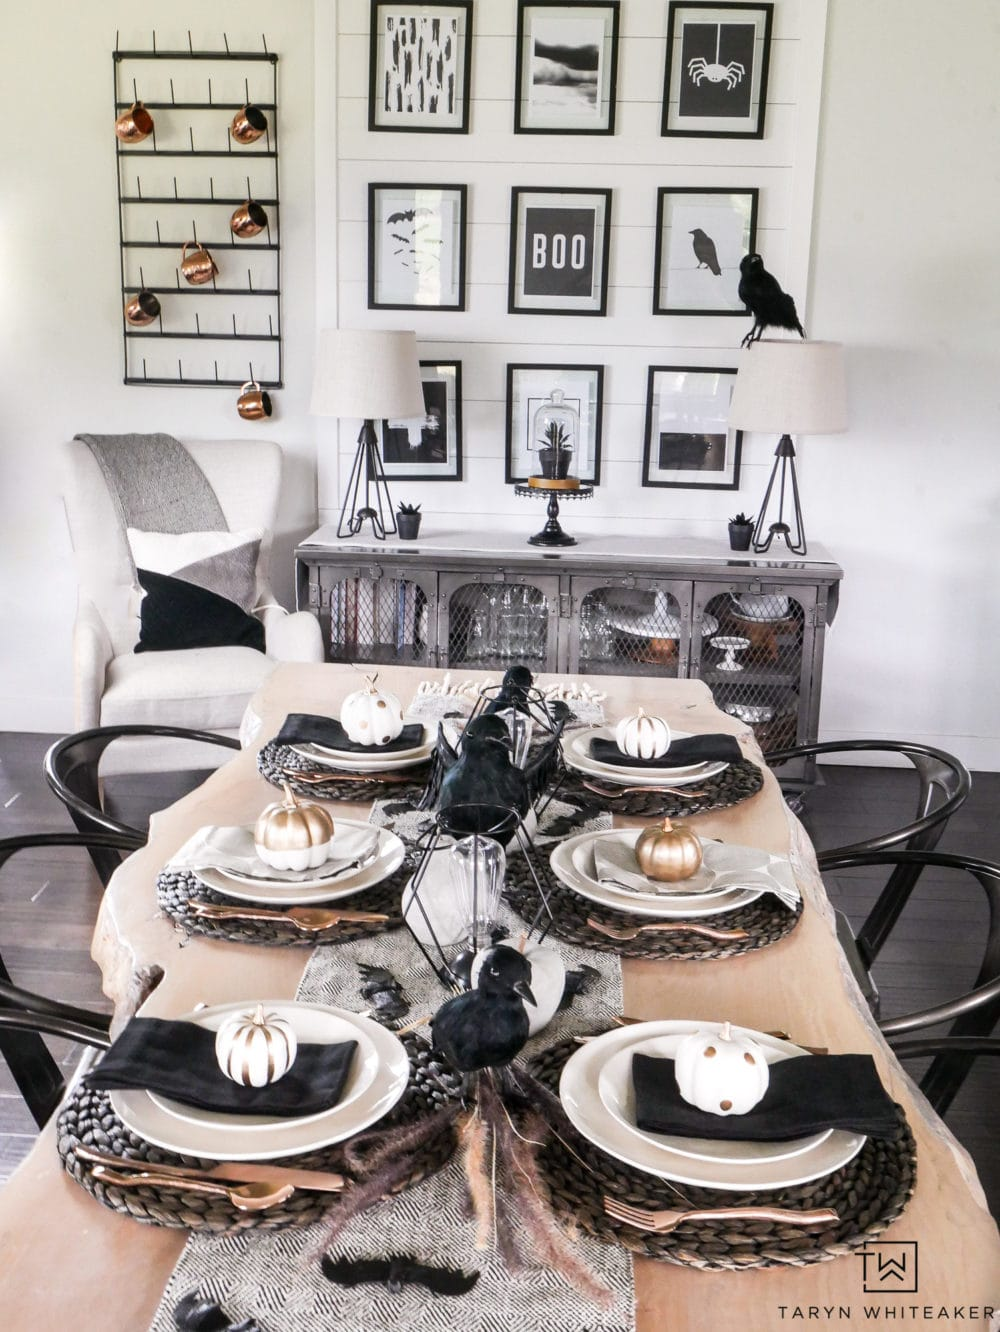 Halloween Home, table decorated in black and white with pumpkins, crows, black accessories